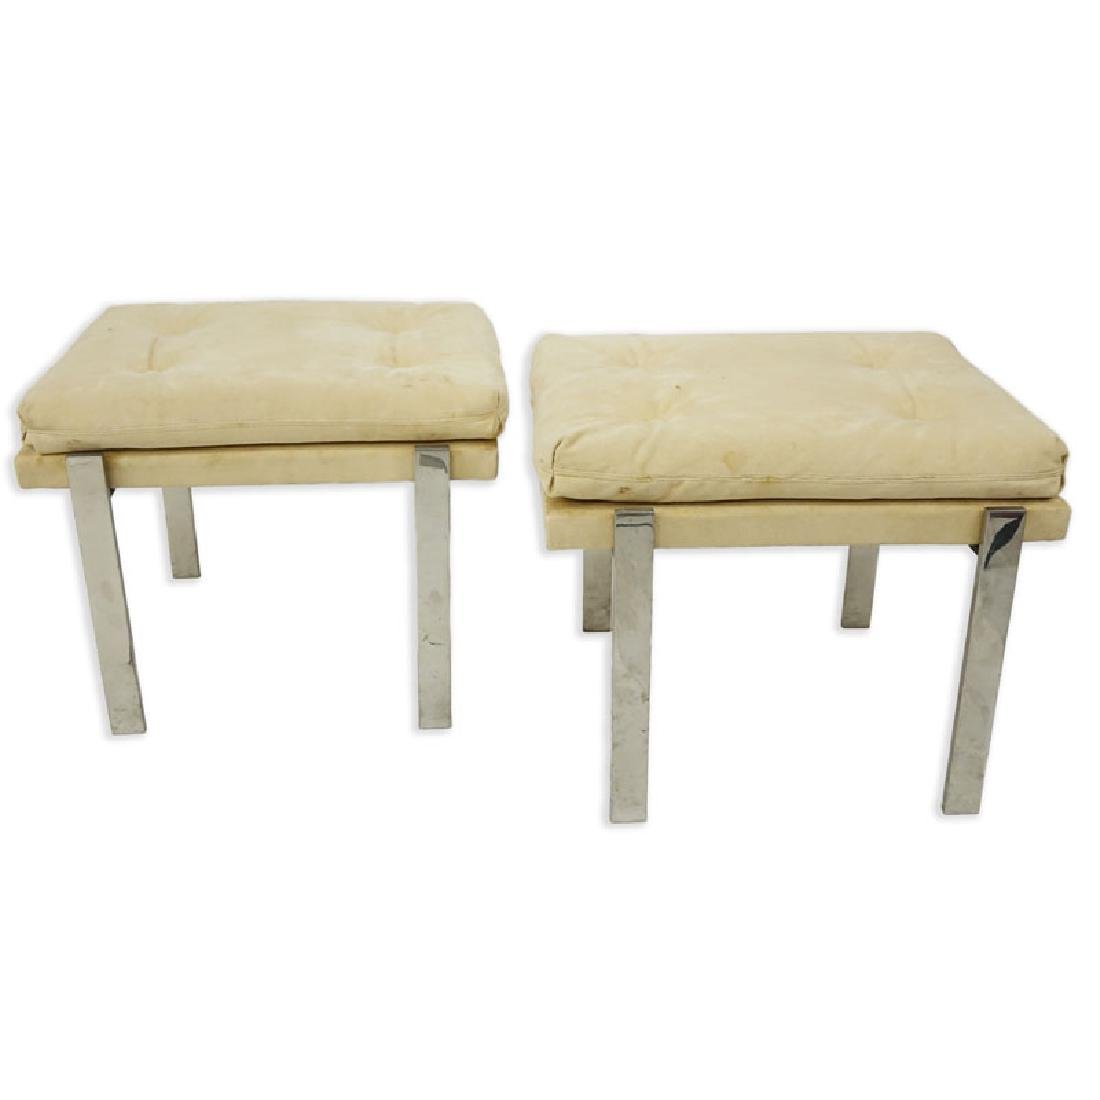 Pair of Mid Century Modern Chrome and Upholstered - 2